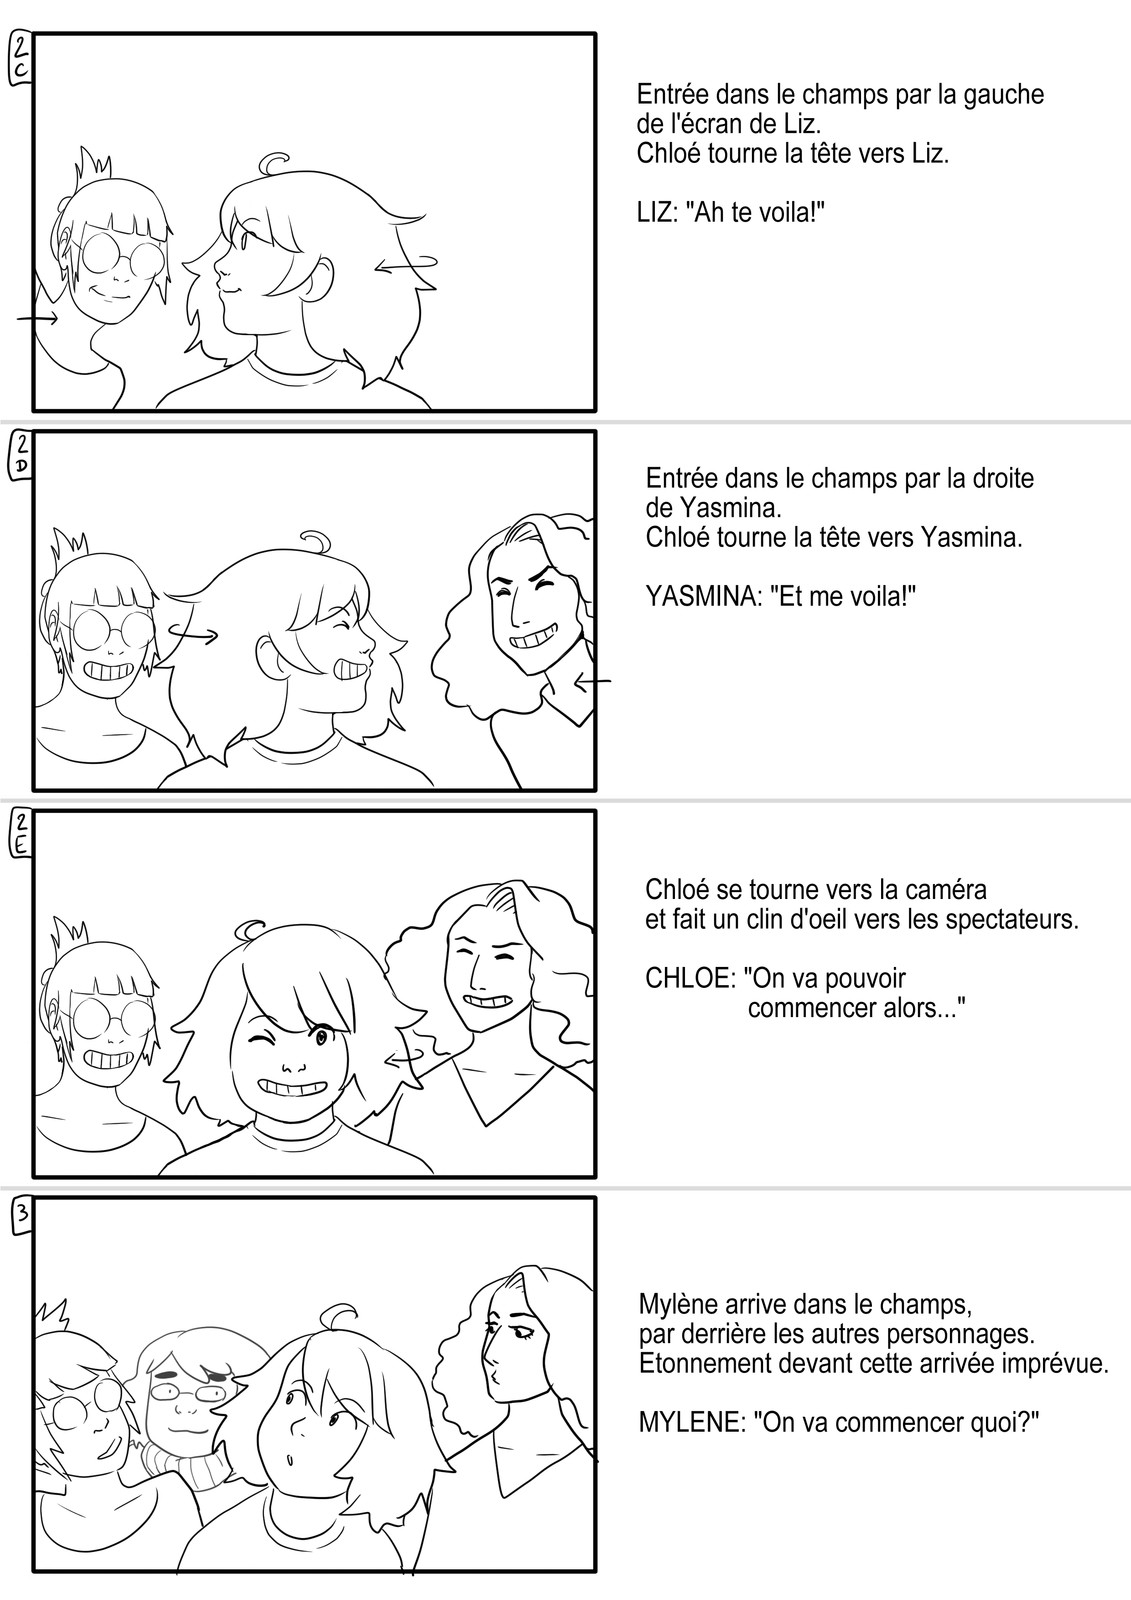 Storyboard for an animated Short - Page 2 - (In French)